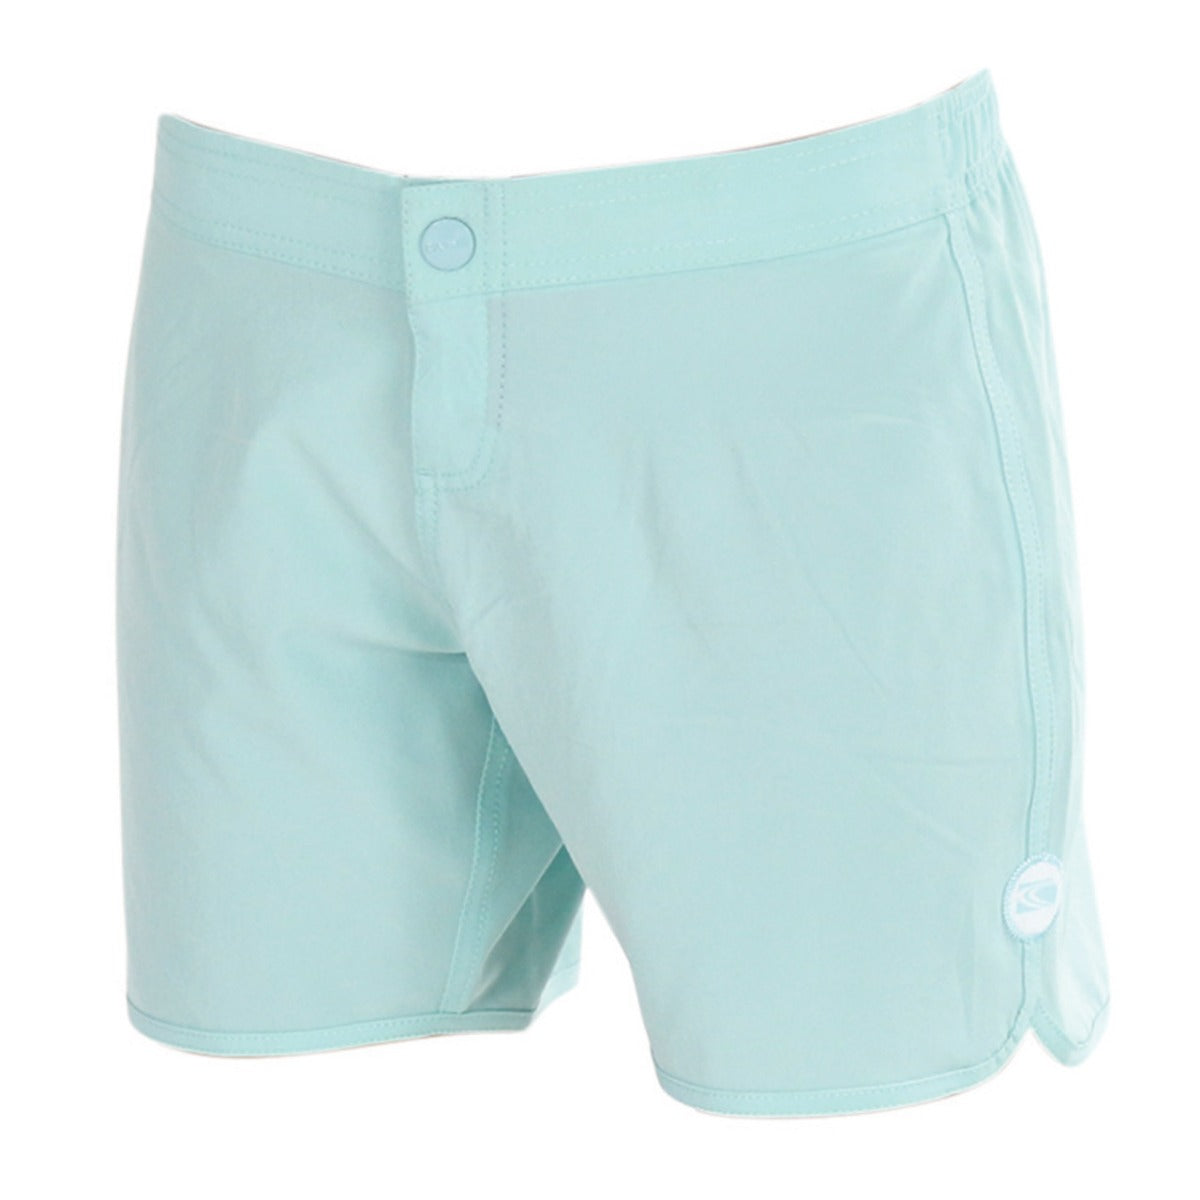 BEACH WAY ladies Scoop Leg Board short - aqua